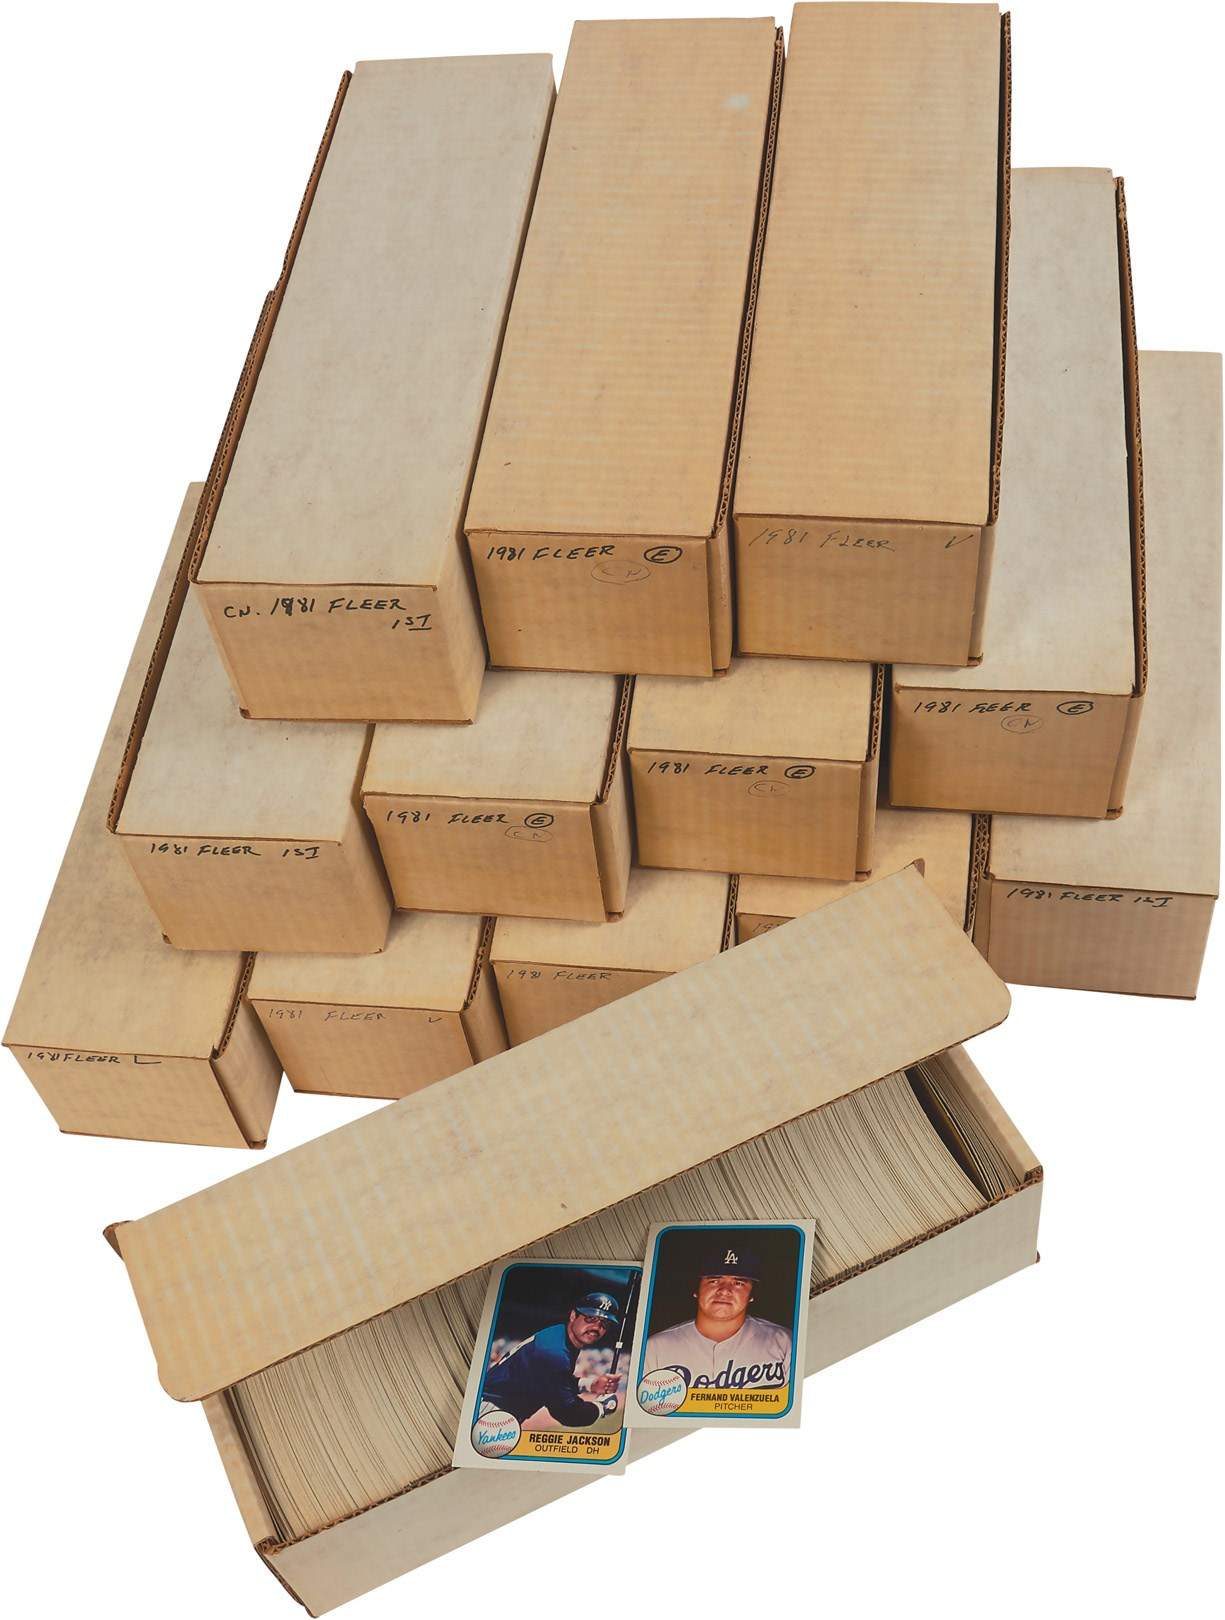 1981 Fleer Complete Sets (8) PLUS Over 3,000 Extras with Stars